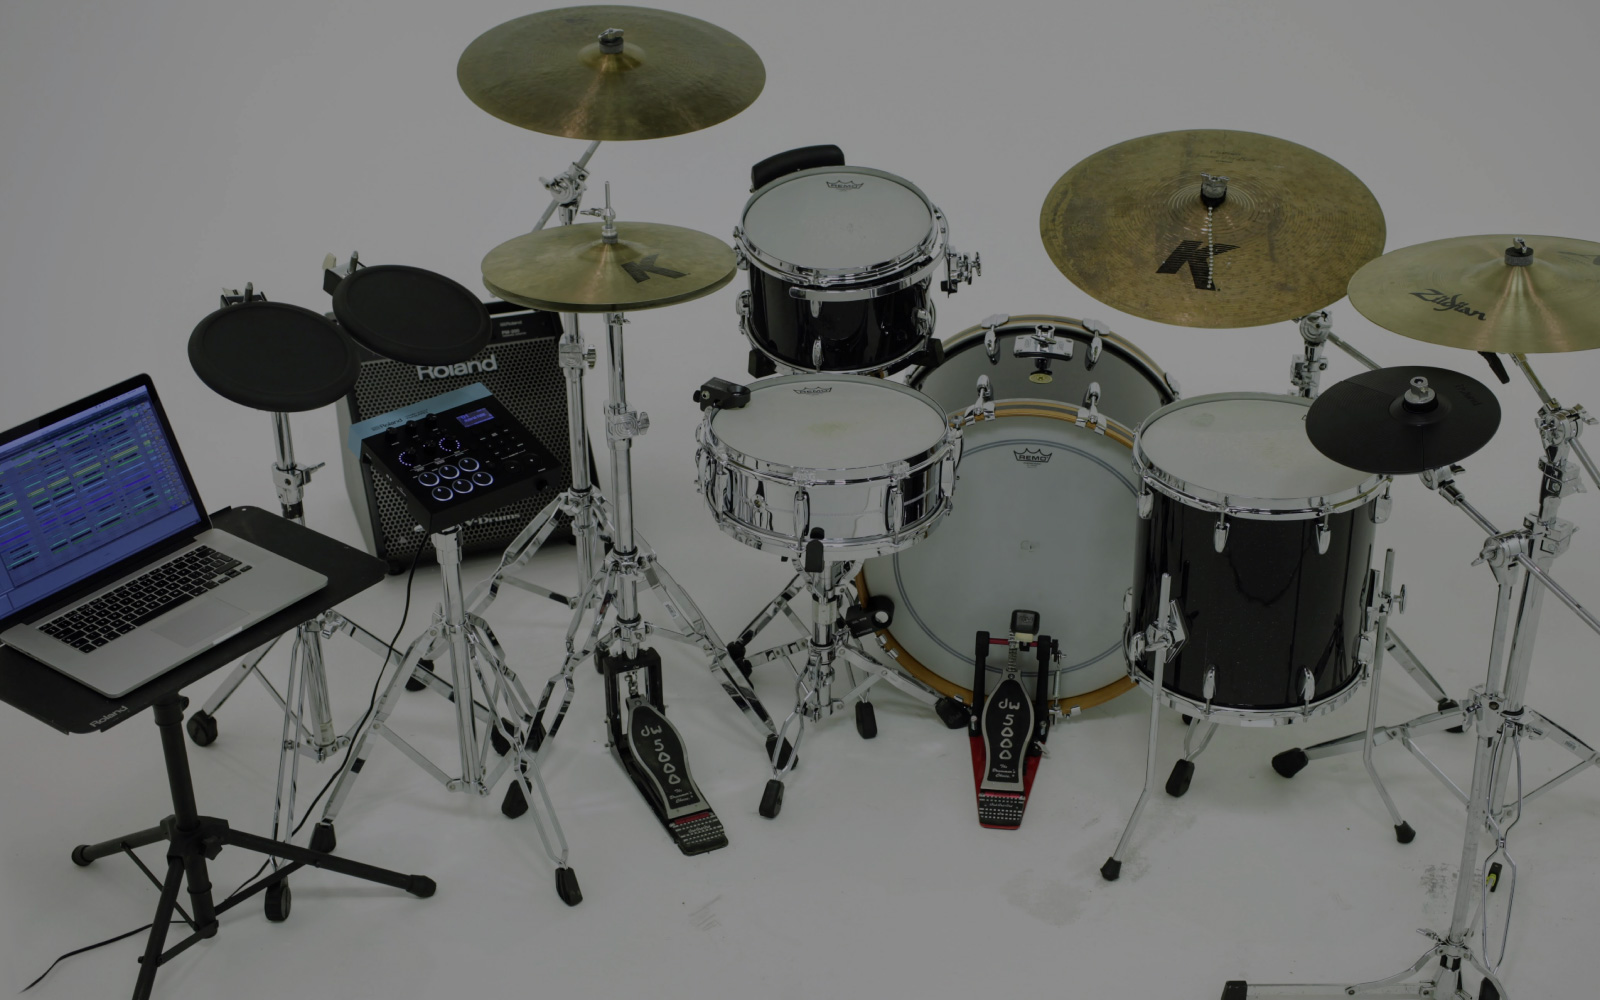 Roland Hybrid Drums Diagram Of A Drum Kit This Shows The Parts And Names Full Fledged System